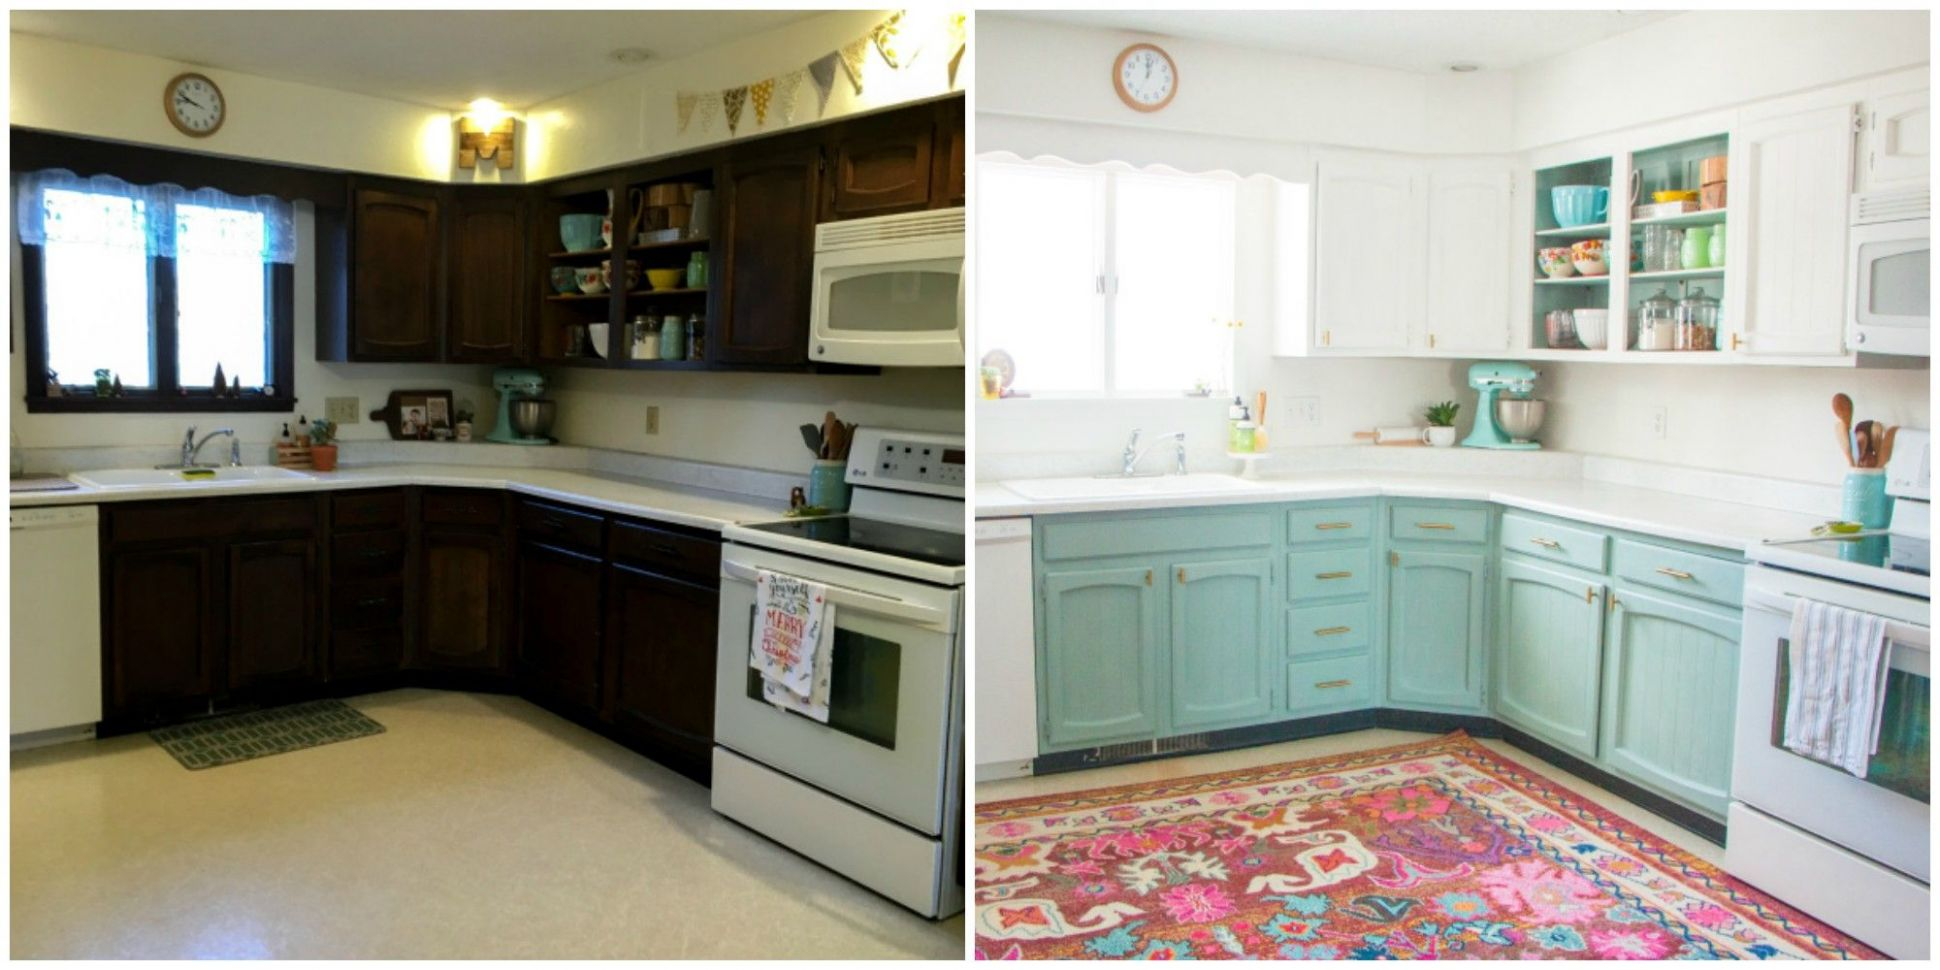 This Bright and Cheery Kitchen Renovation Cost Just $8 - Cheap ..